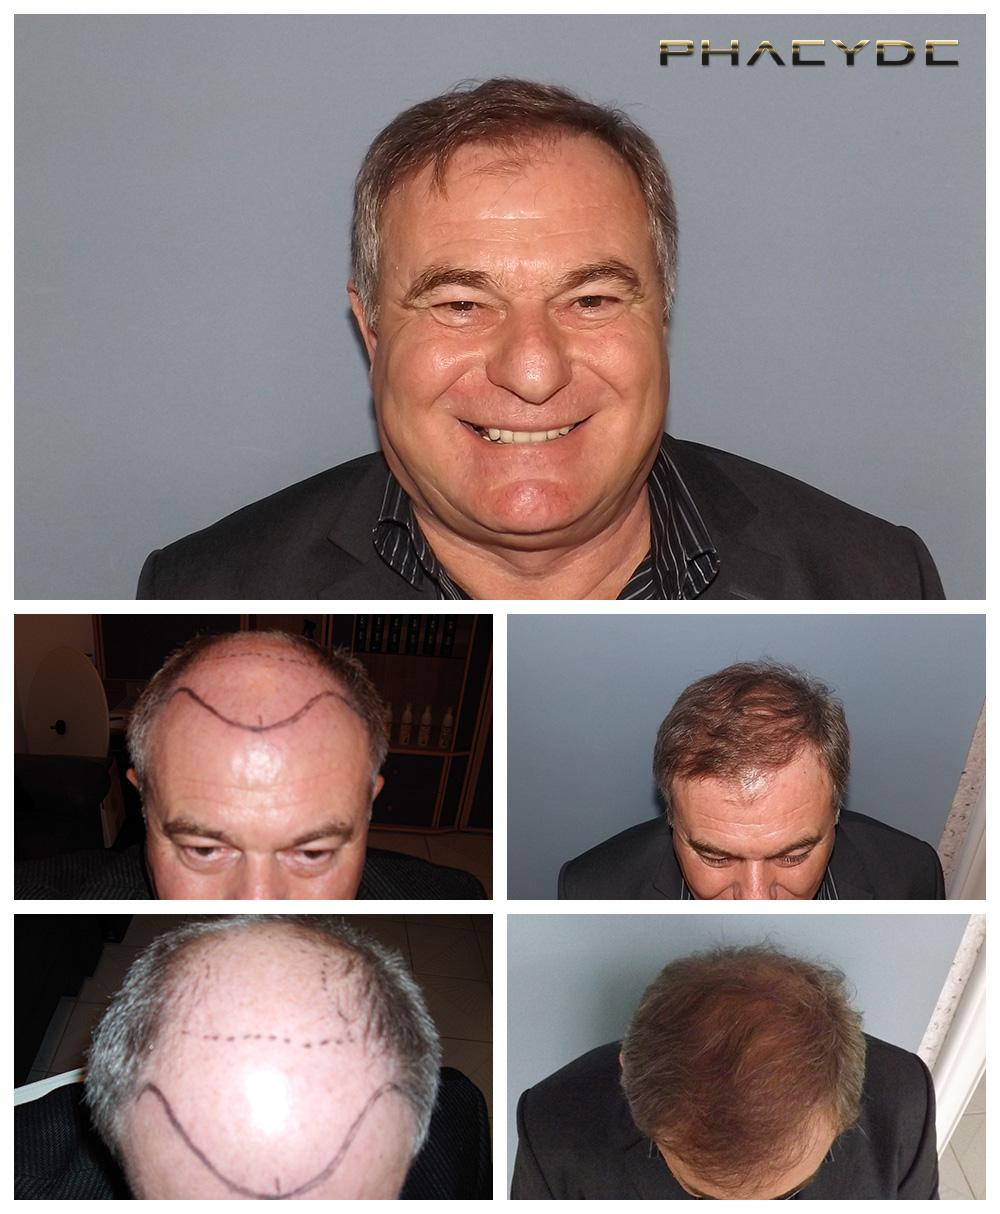 Hair transplant fue results before after photos joseph czinger - PHAEYDE Clinic